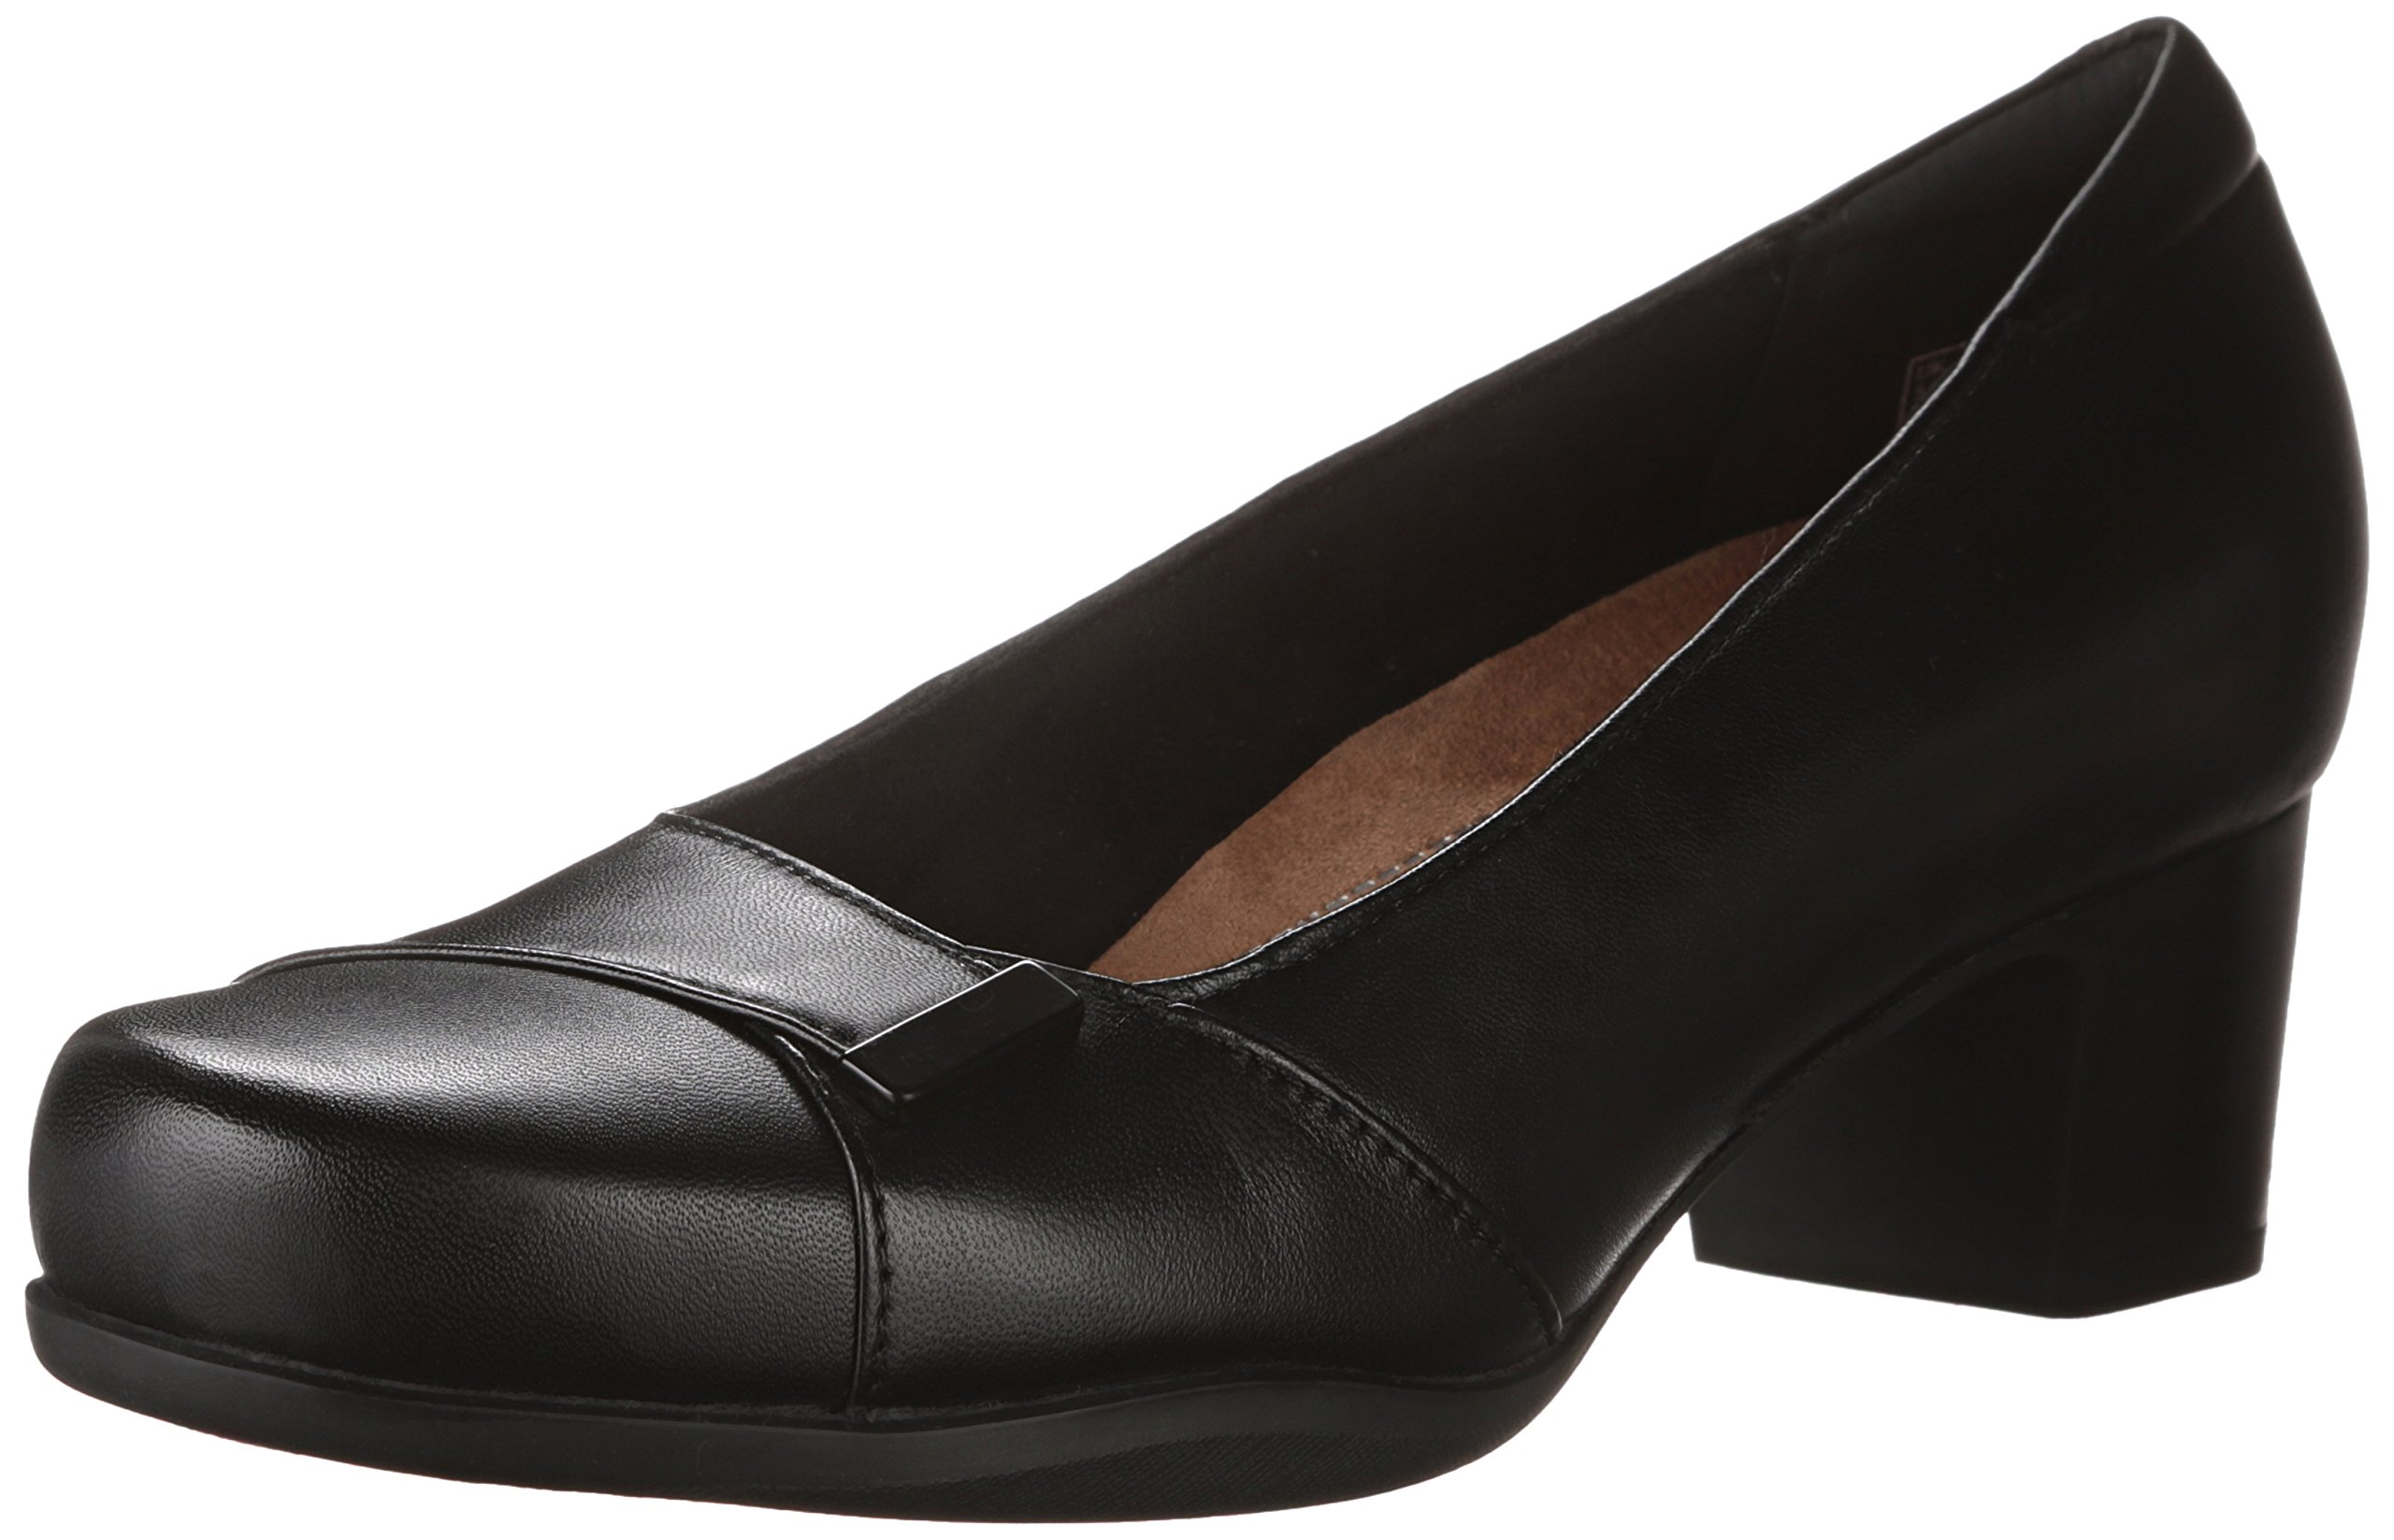 CLARKS Women's Rosalyn Belle Black Leather 9.5 D - Wide by CLARKS